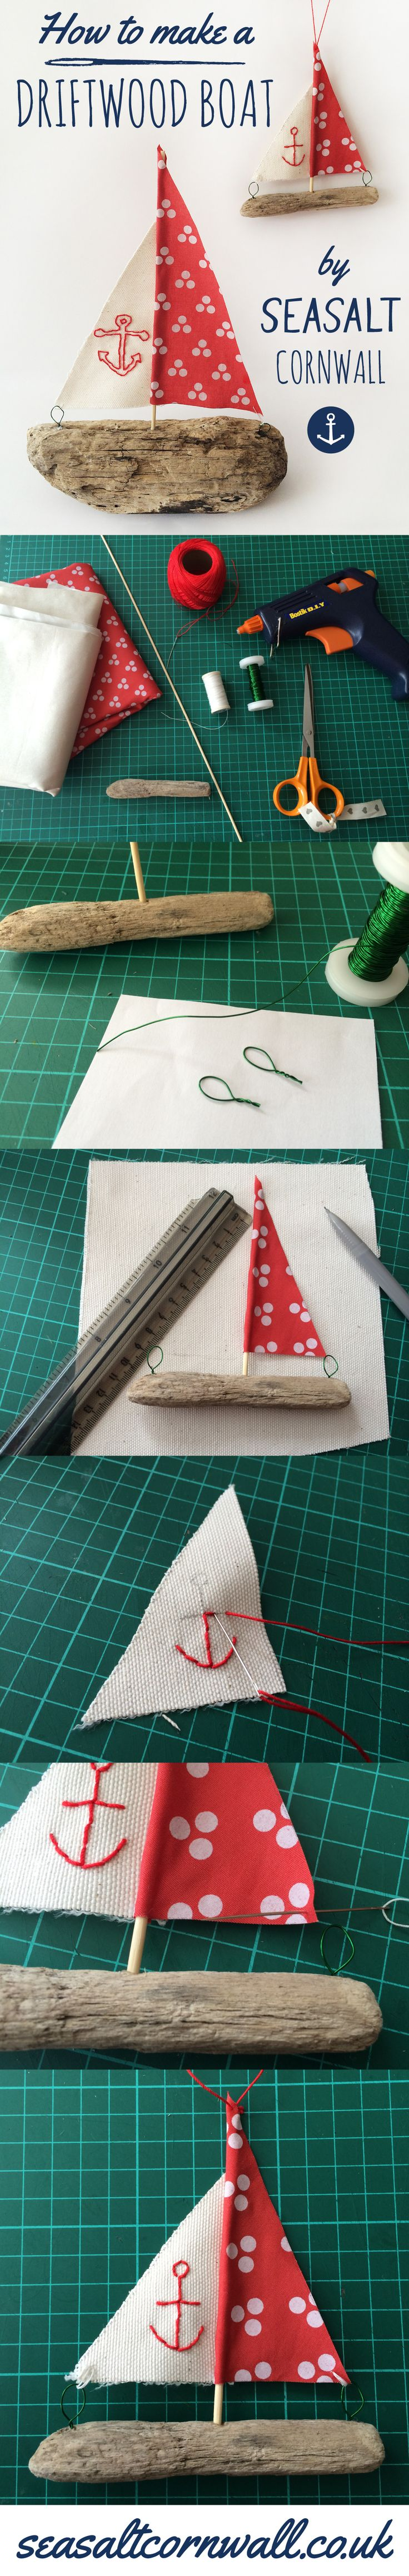 How to make a super nautical driftwood boat decoration by the Seasalt window team. Read full instructions on our blog: https://www.seasaltcornwall.co.uk/blog/11/2014/how-to-make-a-driftwood-boat/